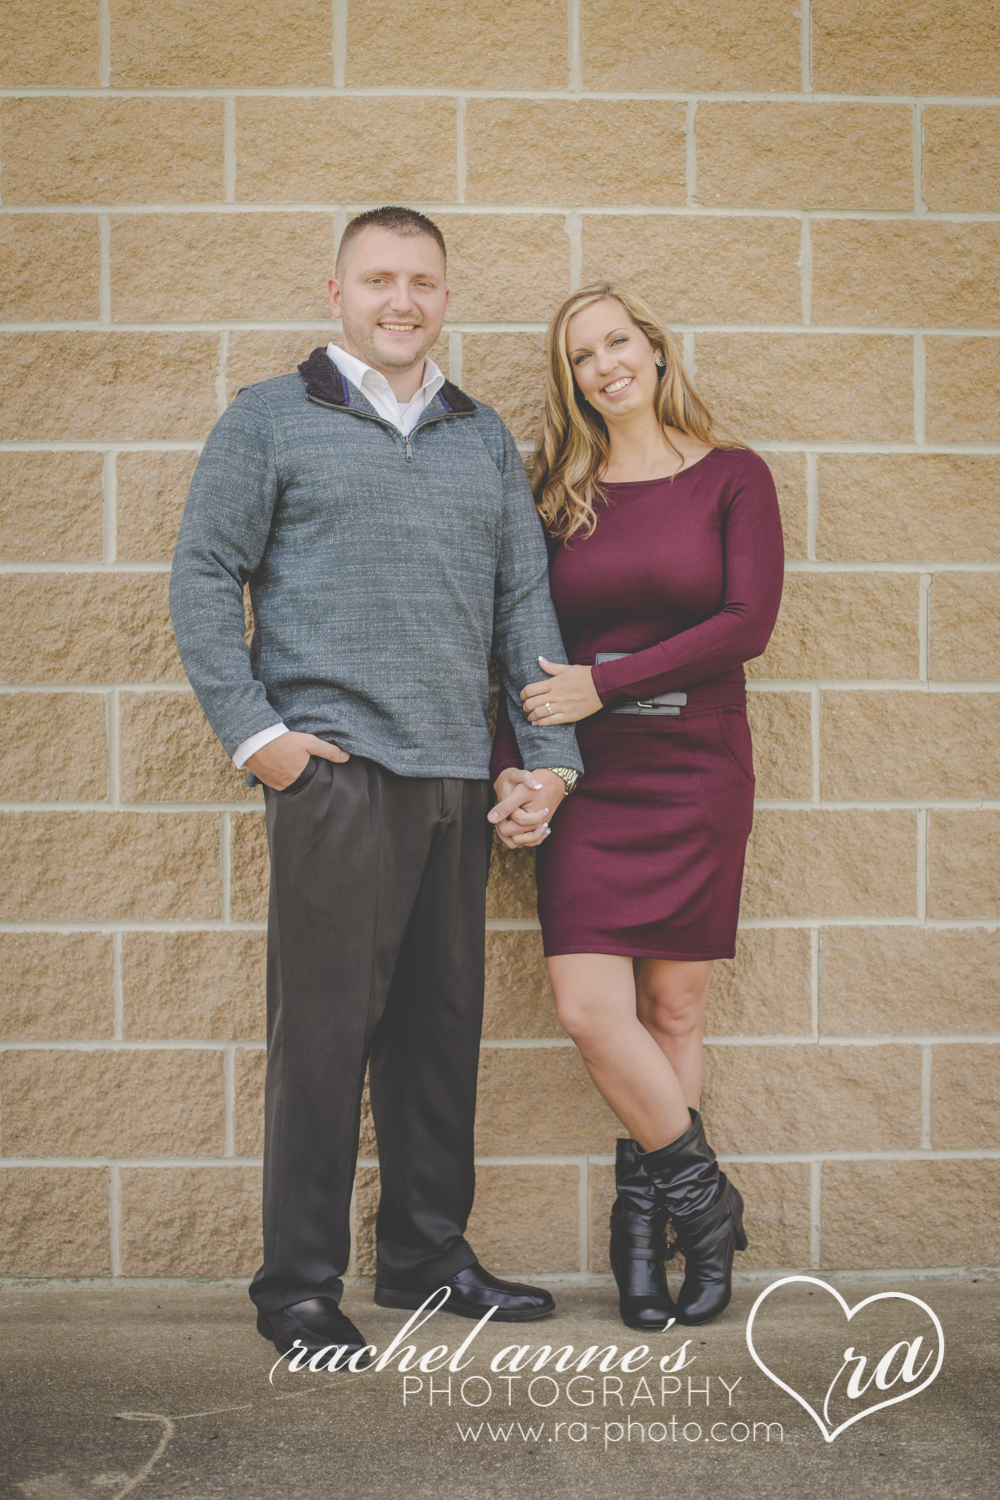 024-RHZ-PITTSBURGH PA ENGAGEMENT PHOTOGRAPHY.jpg